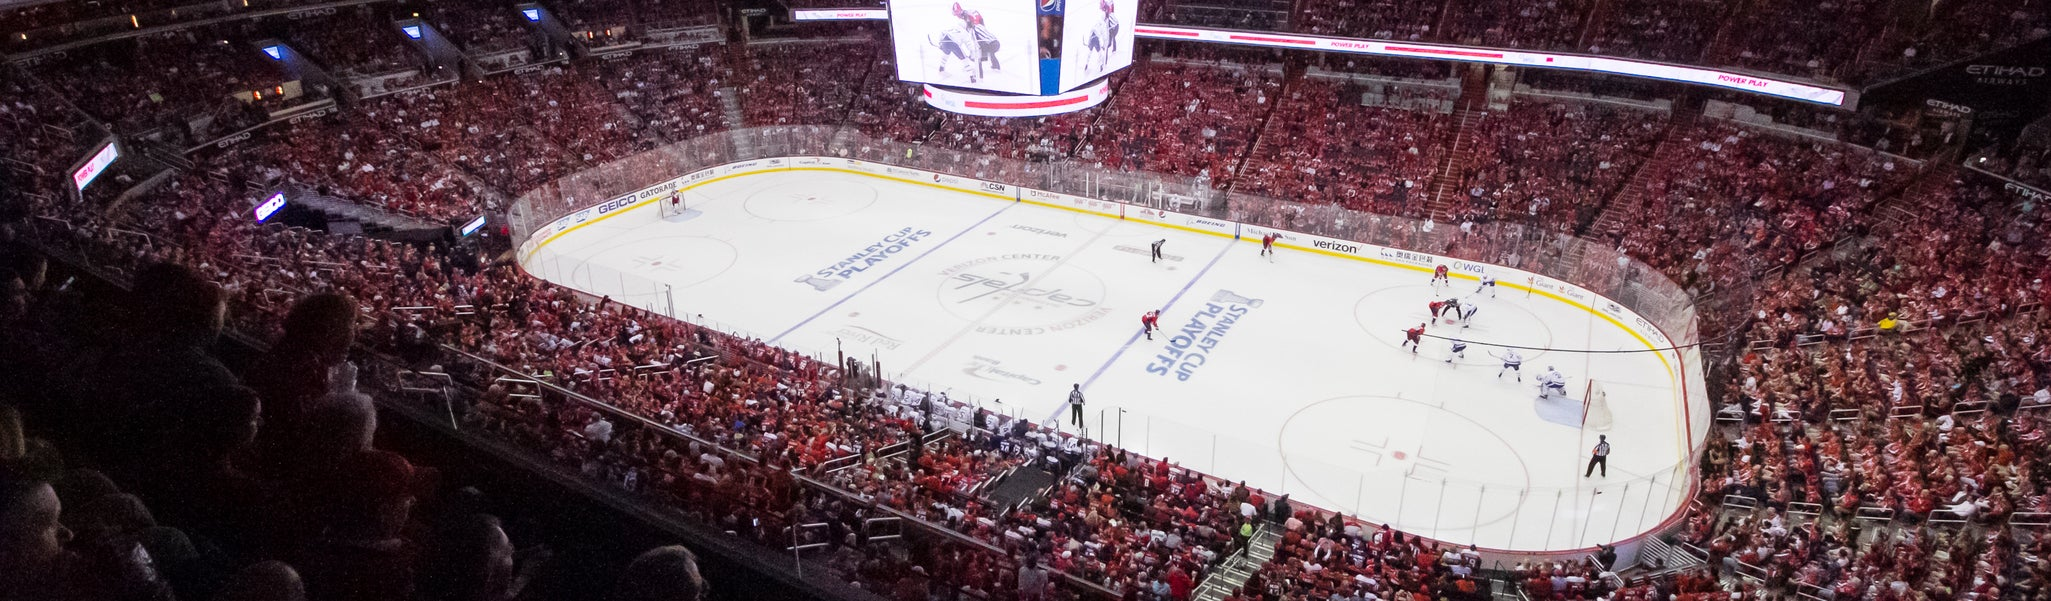 Seat view from Mezzanine Center 402 at Capital One Arena